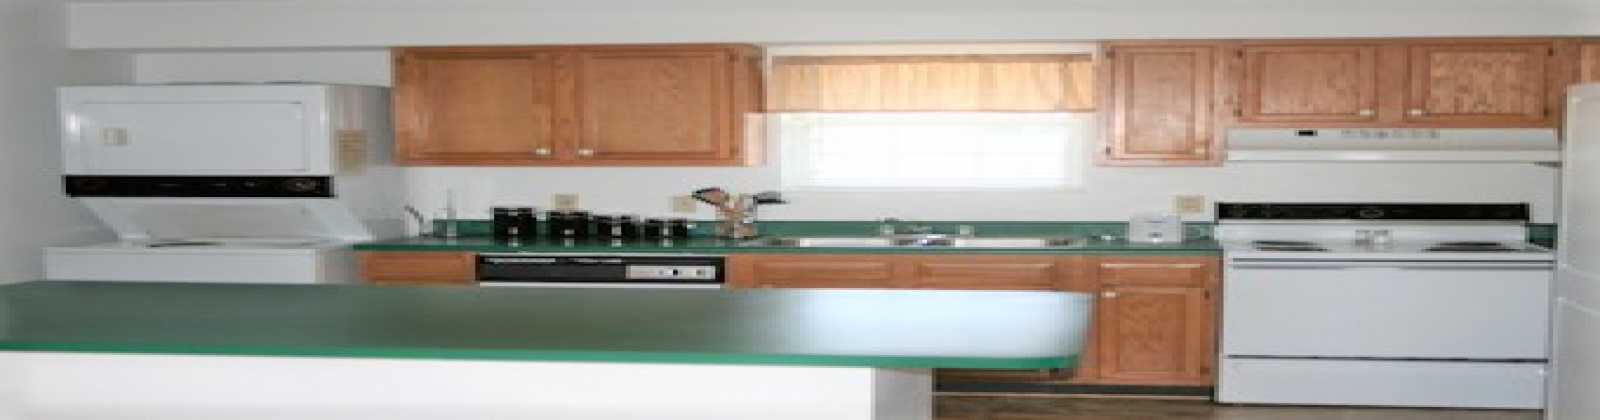 15 S Shafer Street APT 1201 Athens, Ohio, 4 Bedrooms Bedrooms, ,2 BathroomsBathrooms,Apartment,For Rent,S Shafer,1111